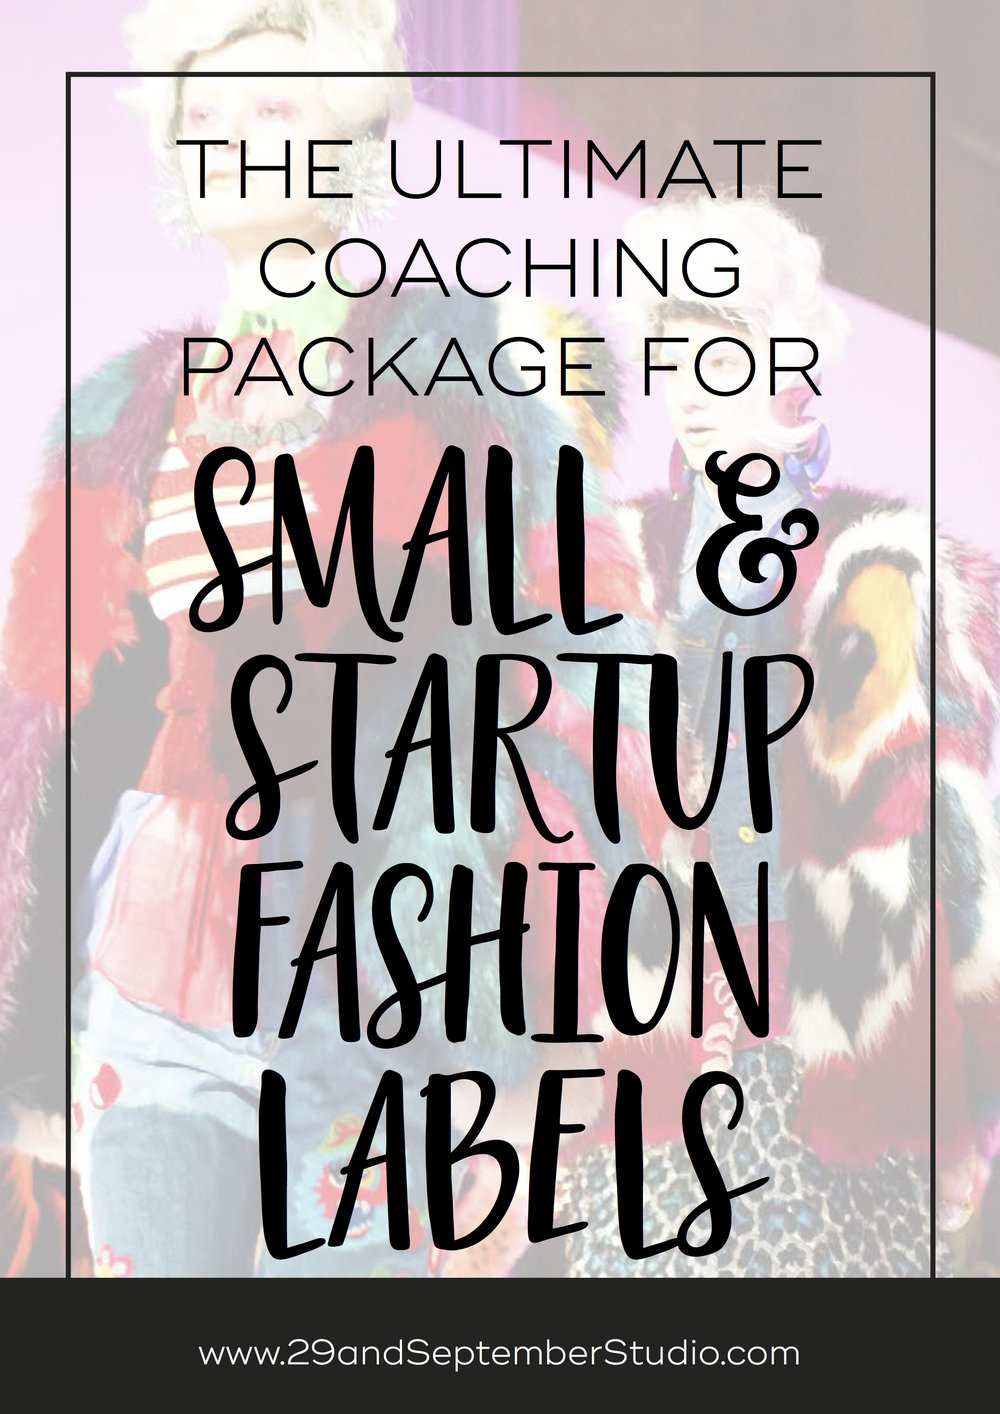 The ultimate coaching package for small businesses and startup fashion labels, from 29andSeptember Studio